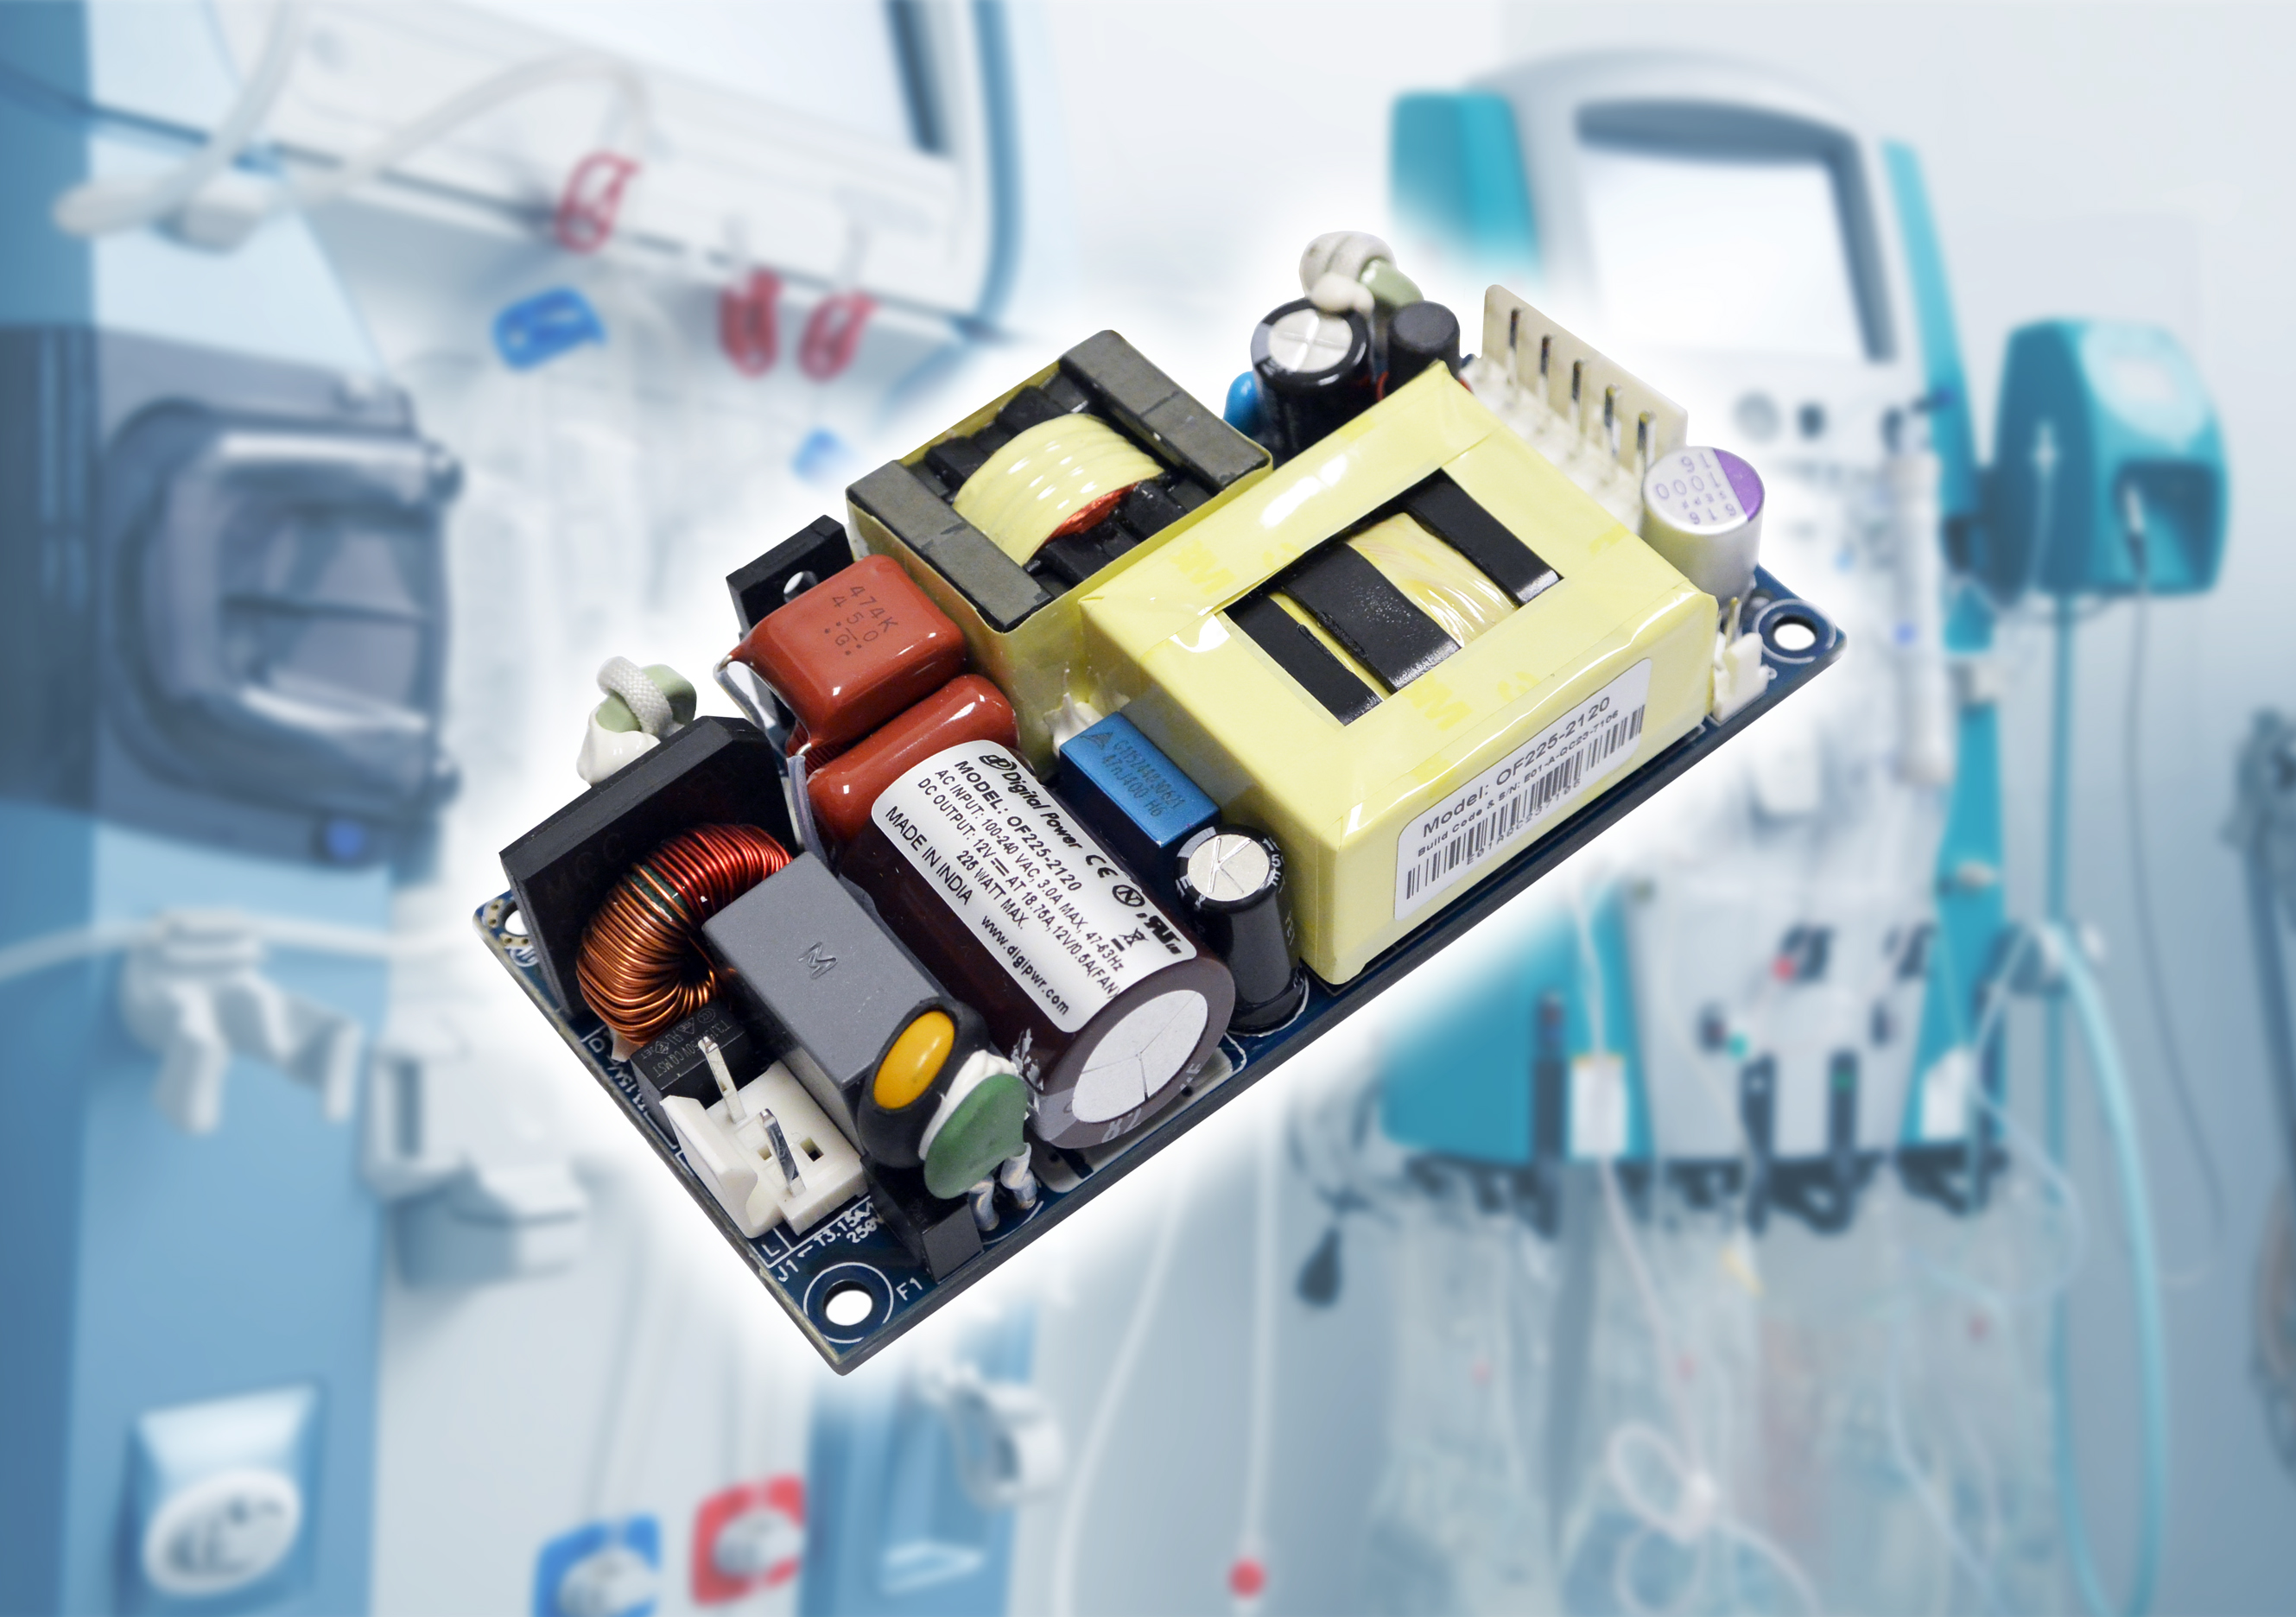 Medical Power Supplies Include Output Power up to 550W